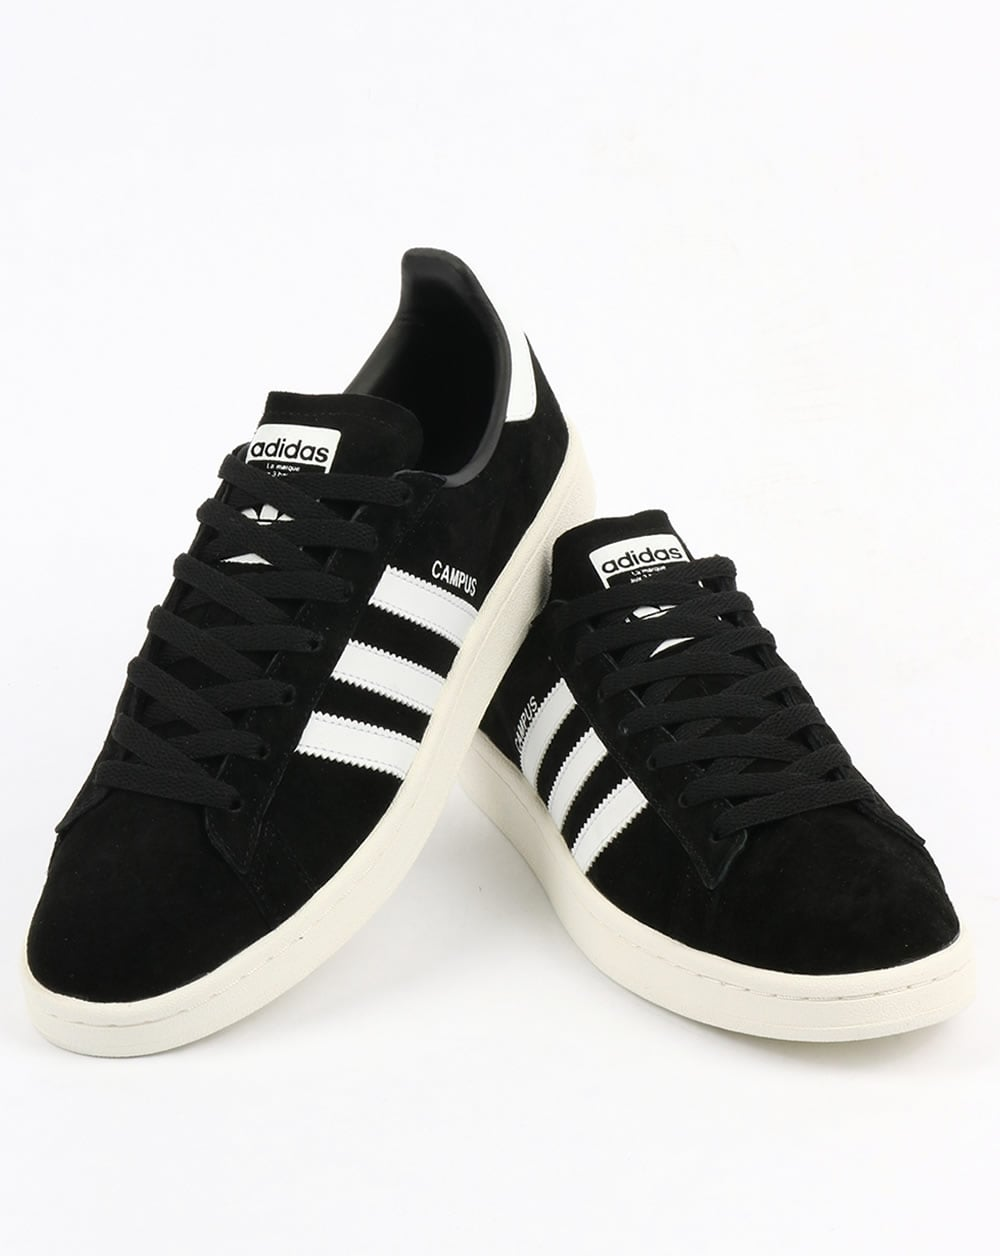 big sale 7490f 517e6 Adidas Campus Trainers BlackWhite